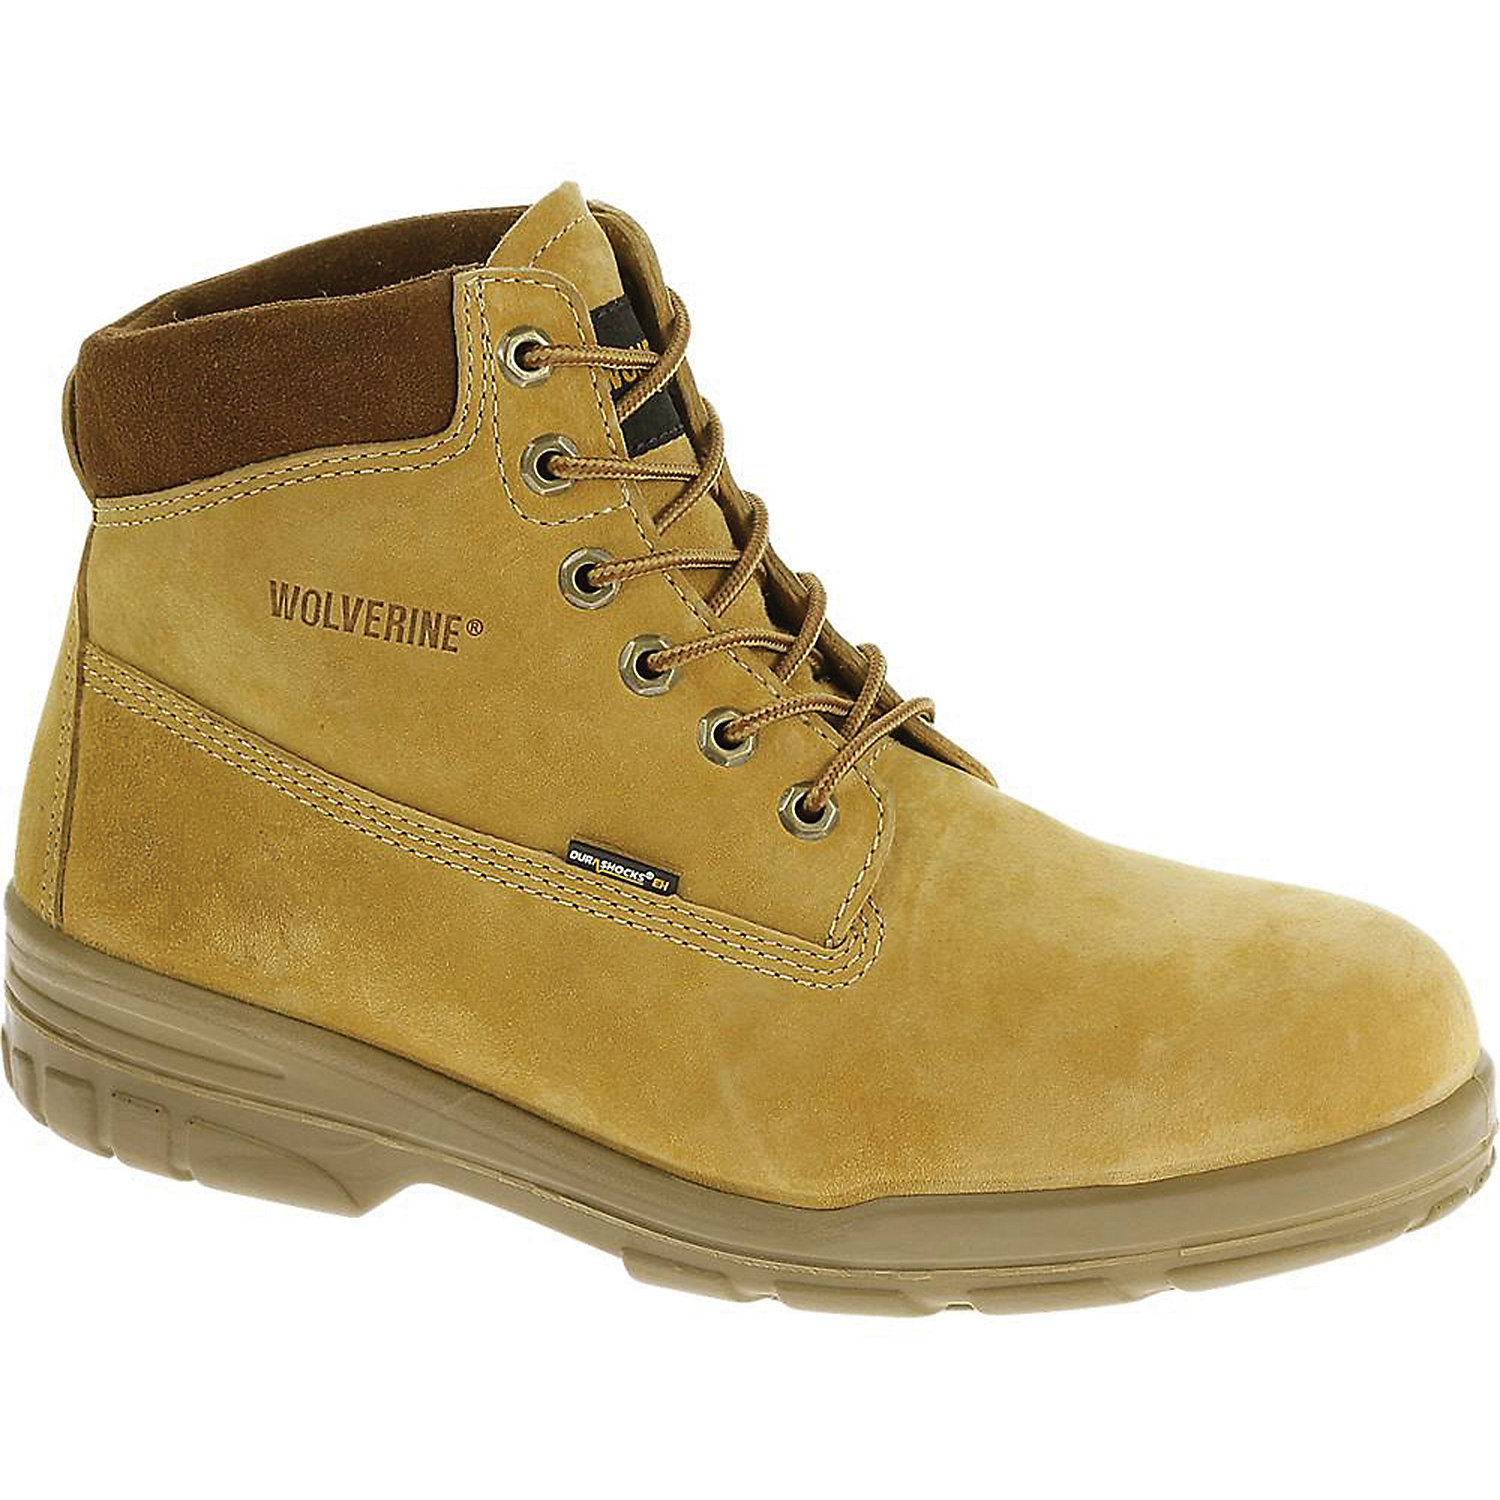 2fe616e74e3 Wolverine Men's Trappeur Waterproof Insulated 6IN Boot